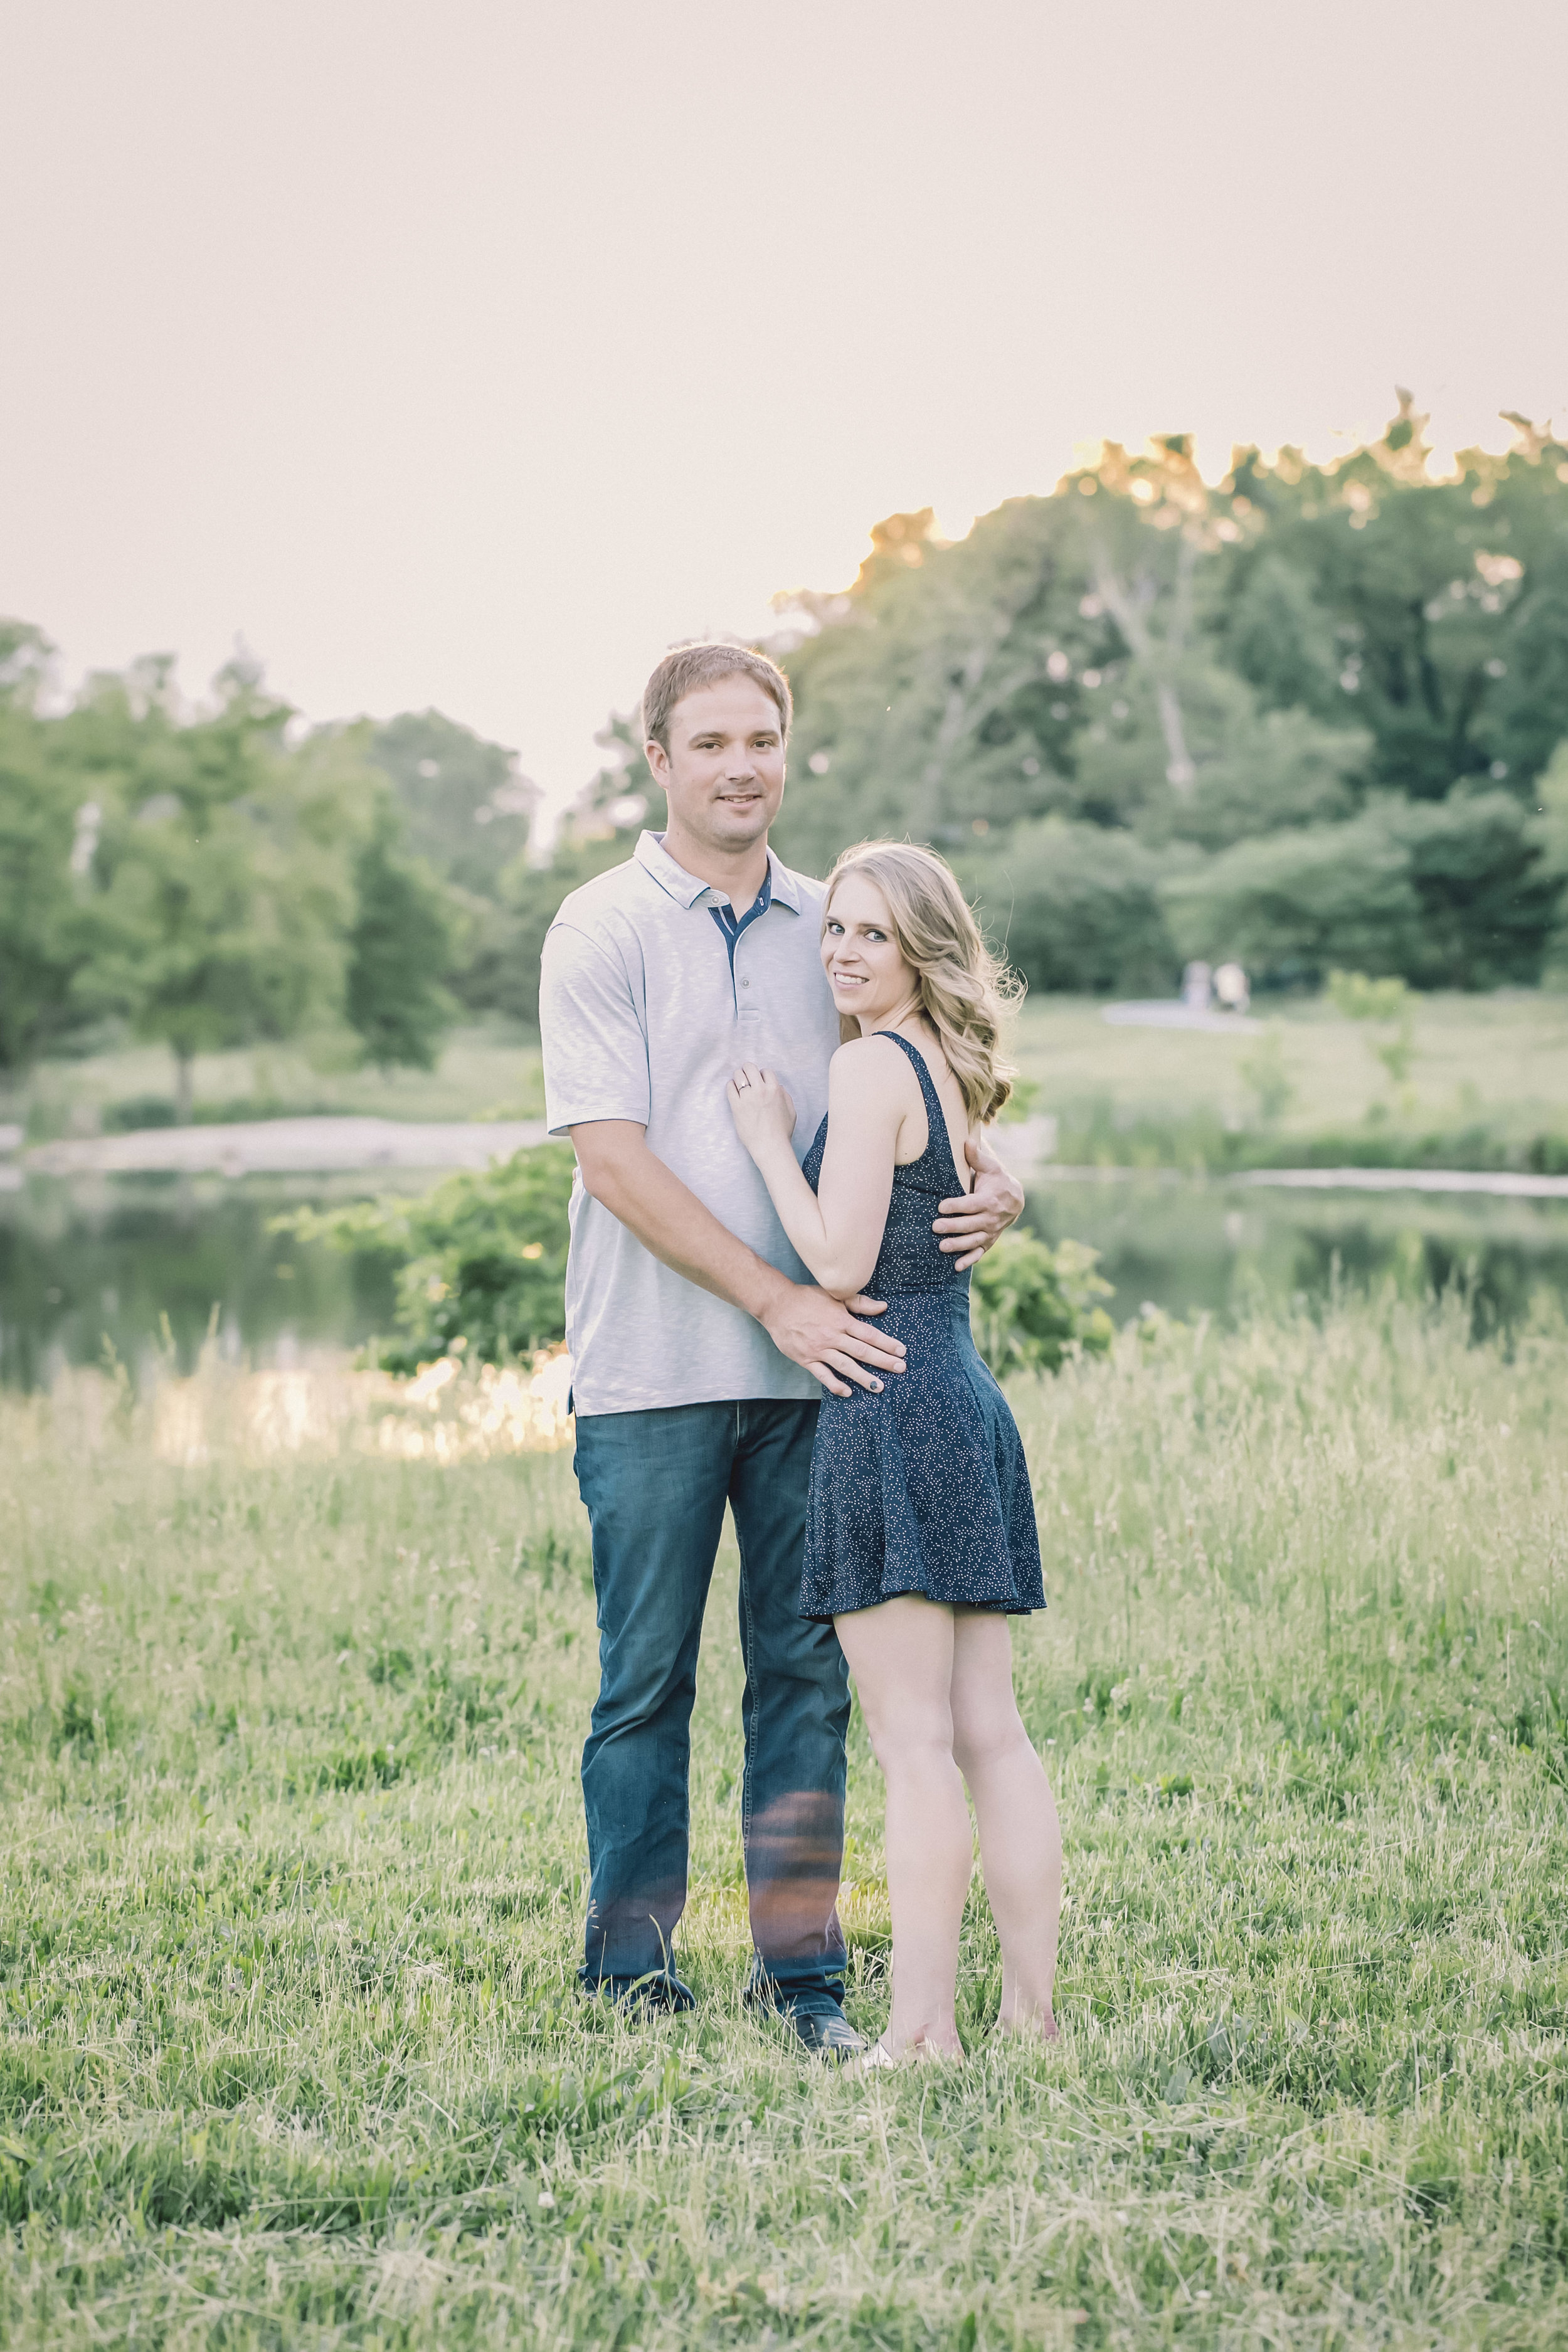 Rebecca_K_Clark_Photography_Engagement_Gallery_Web-41.JPG